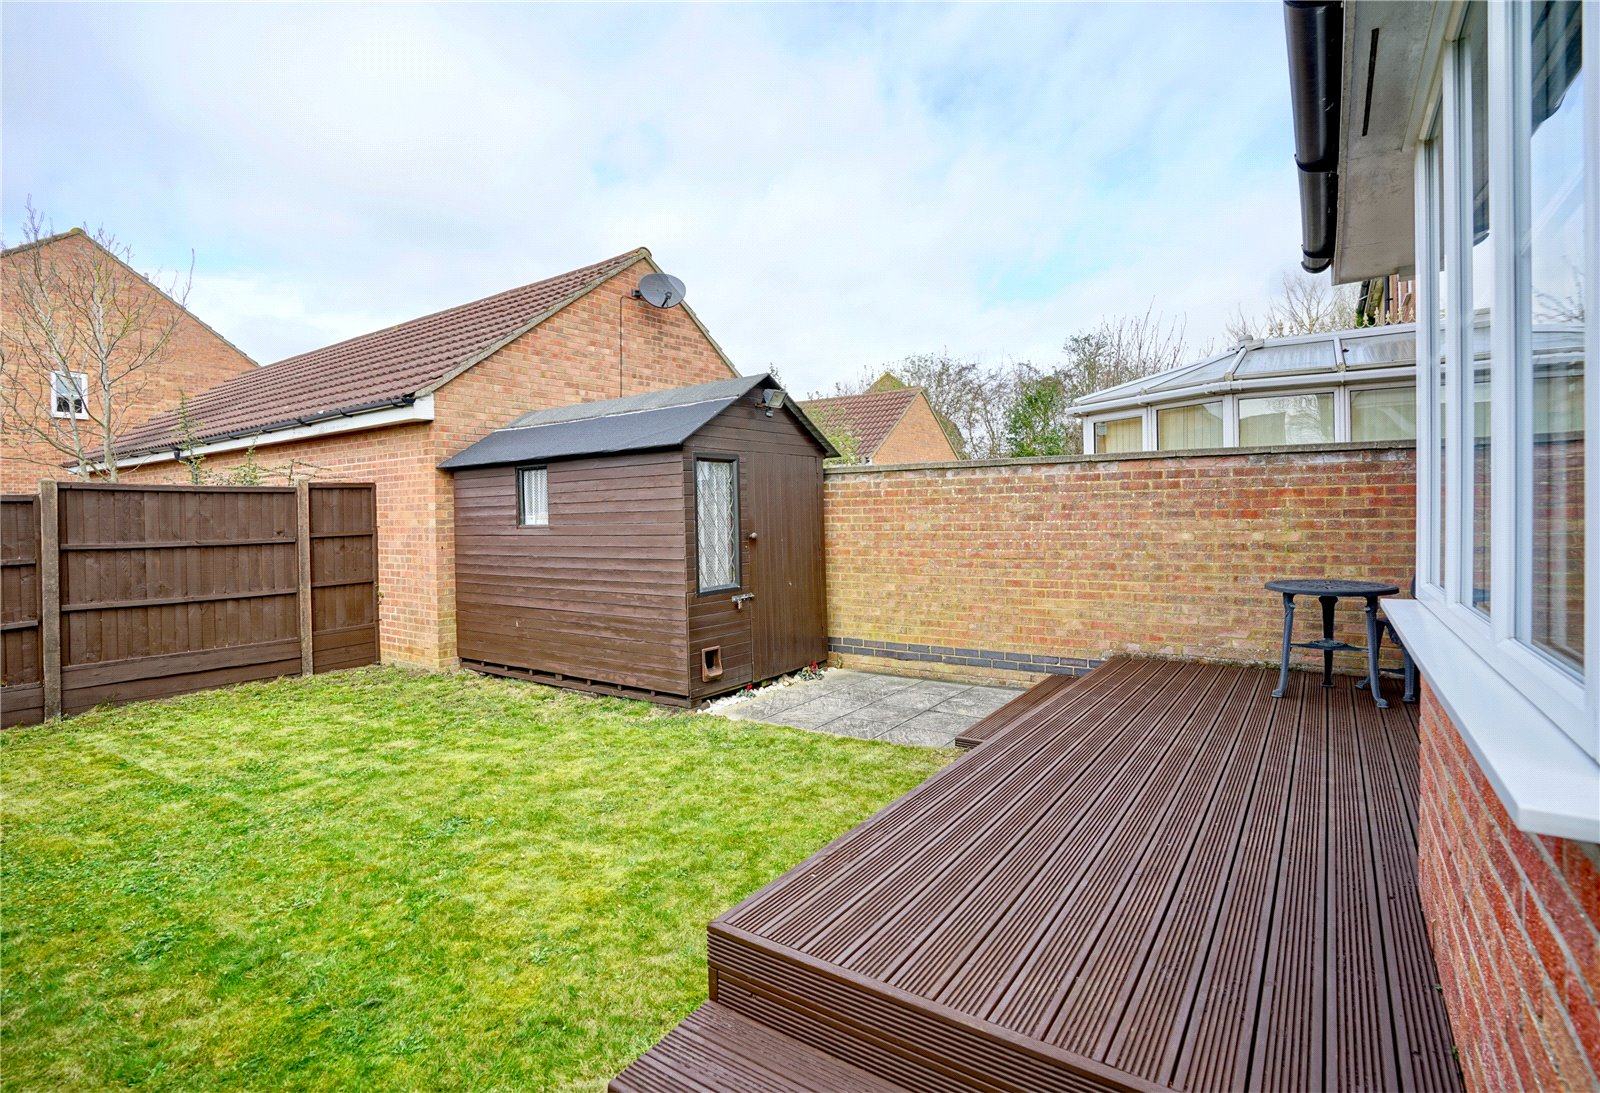 1 bed house for sale in Begwary Close, Eaton Socon 3